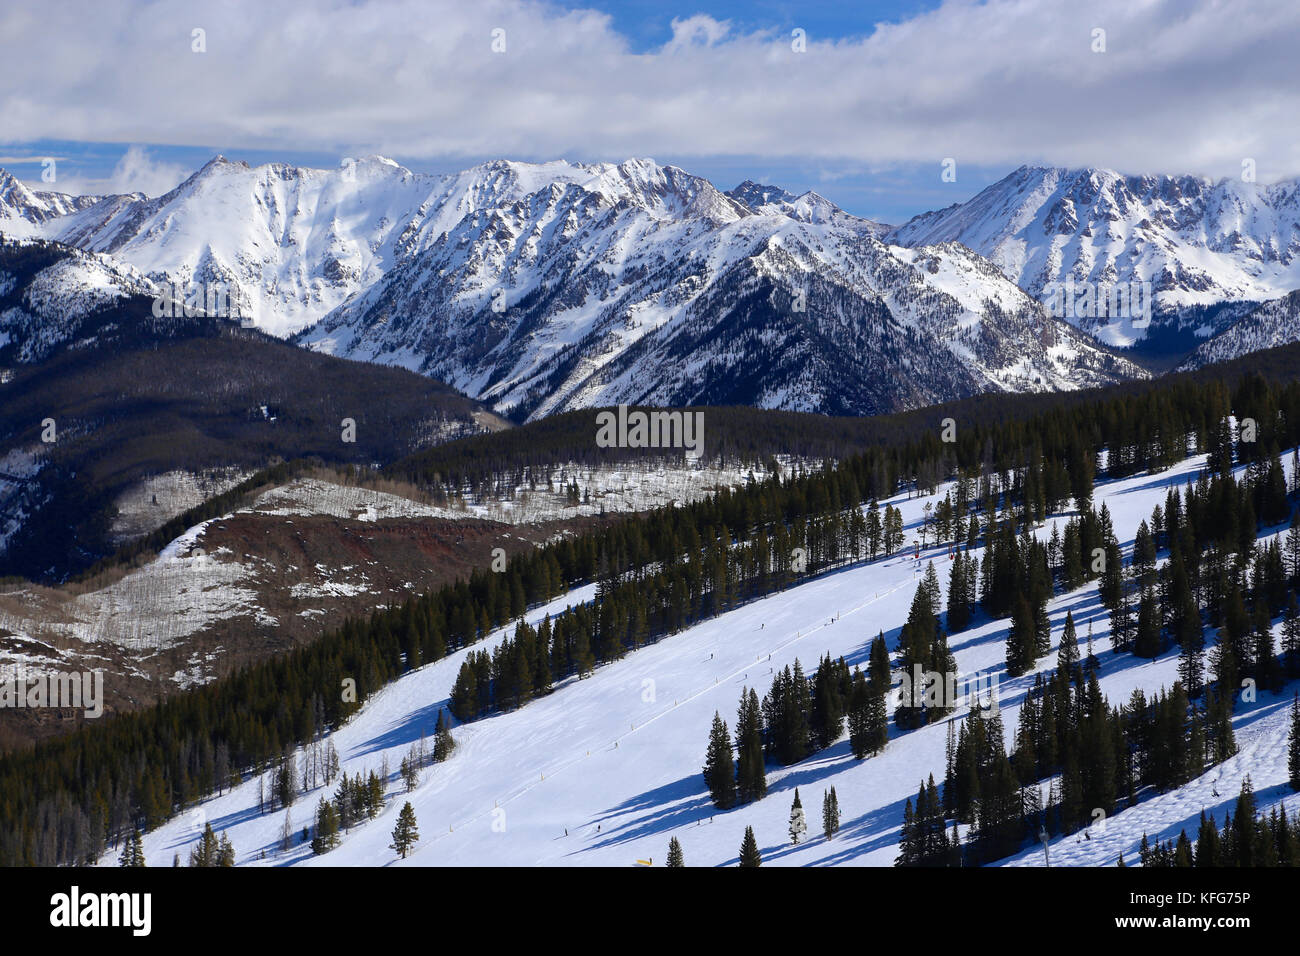 Vail ski resort in winter in the Colorado Rocky Mountains - Stock Image